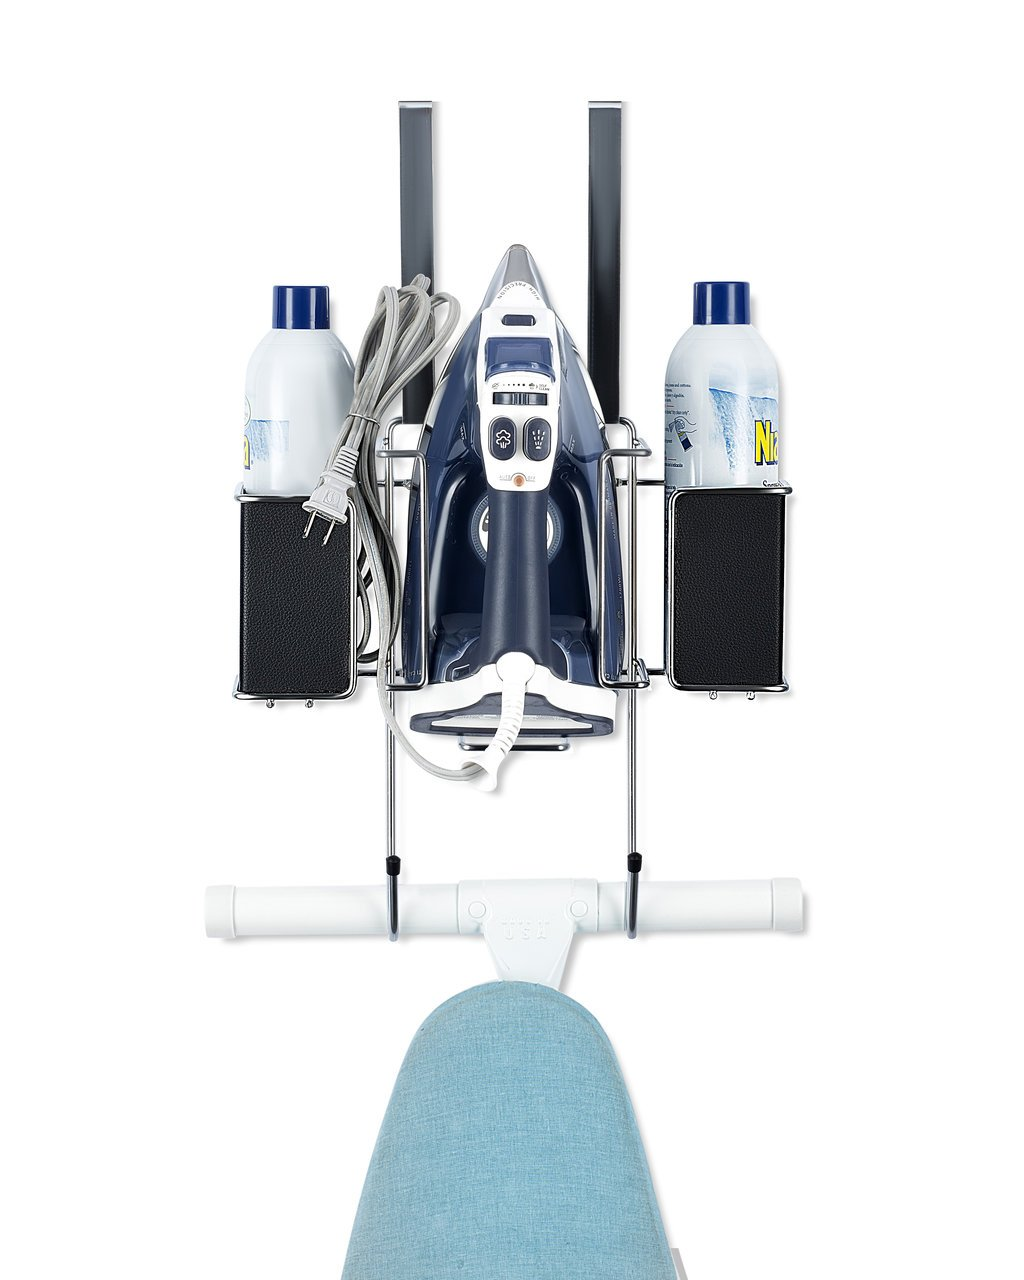 Ironing Board Hanger- with Storage Basket for Clothing Iron - Ironing Board Holder Wall Mount